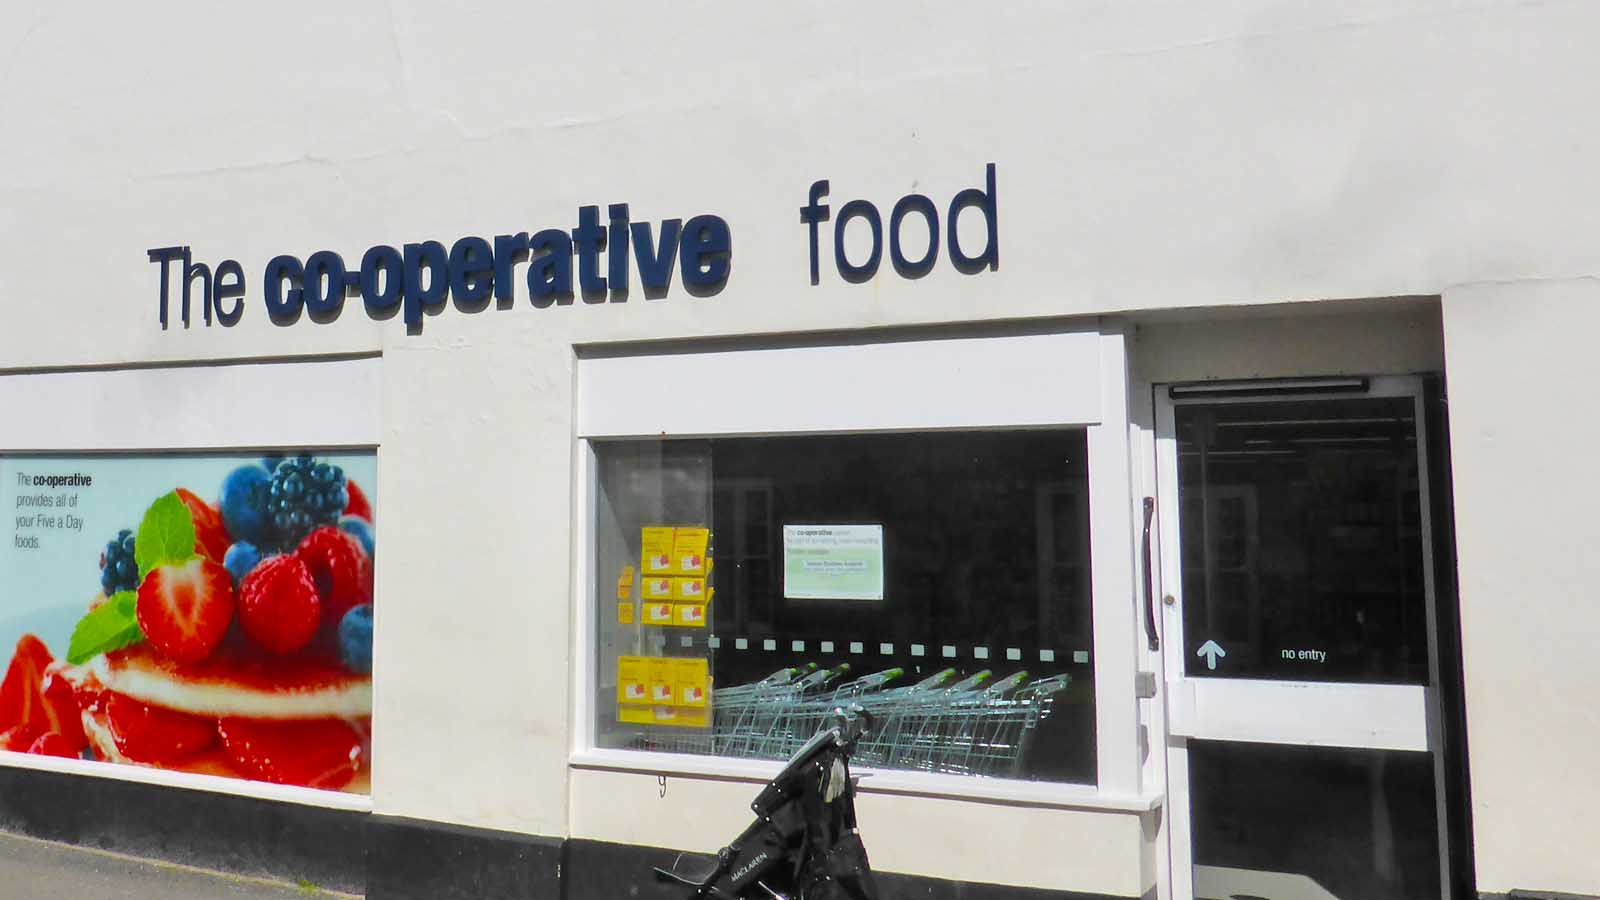 The Co-op in Hugh Town on St Mary's.